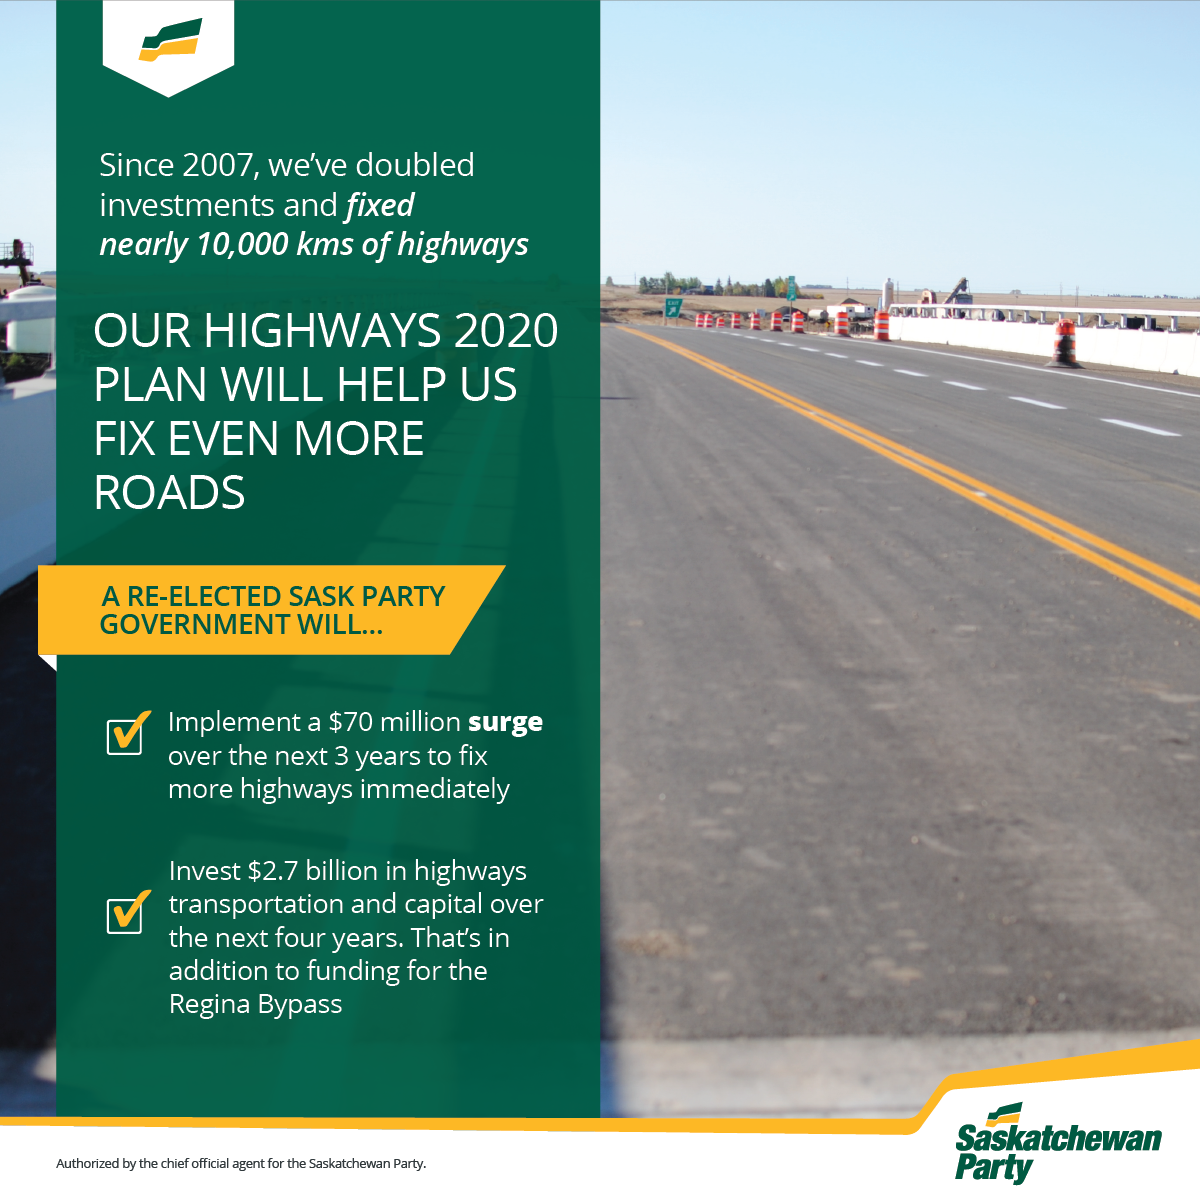 Highways_2020_Graphic-01-01.png